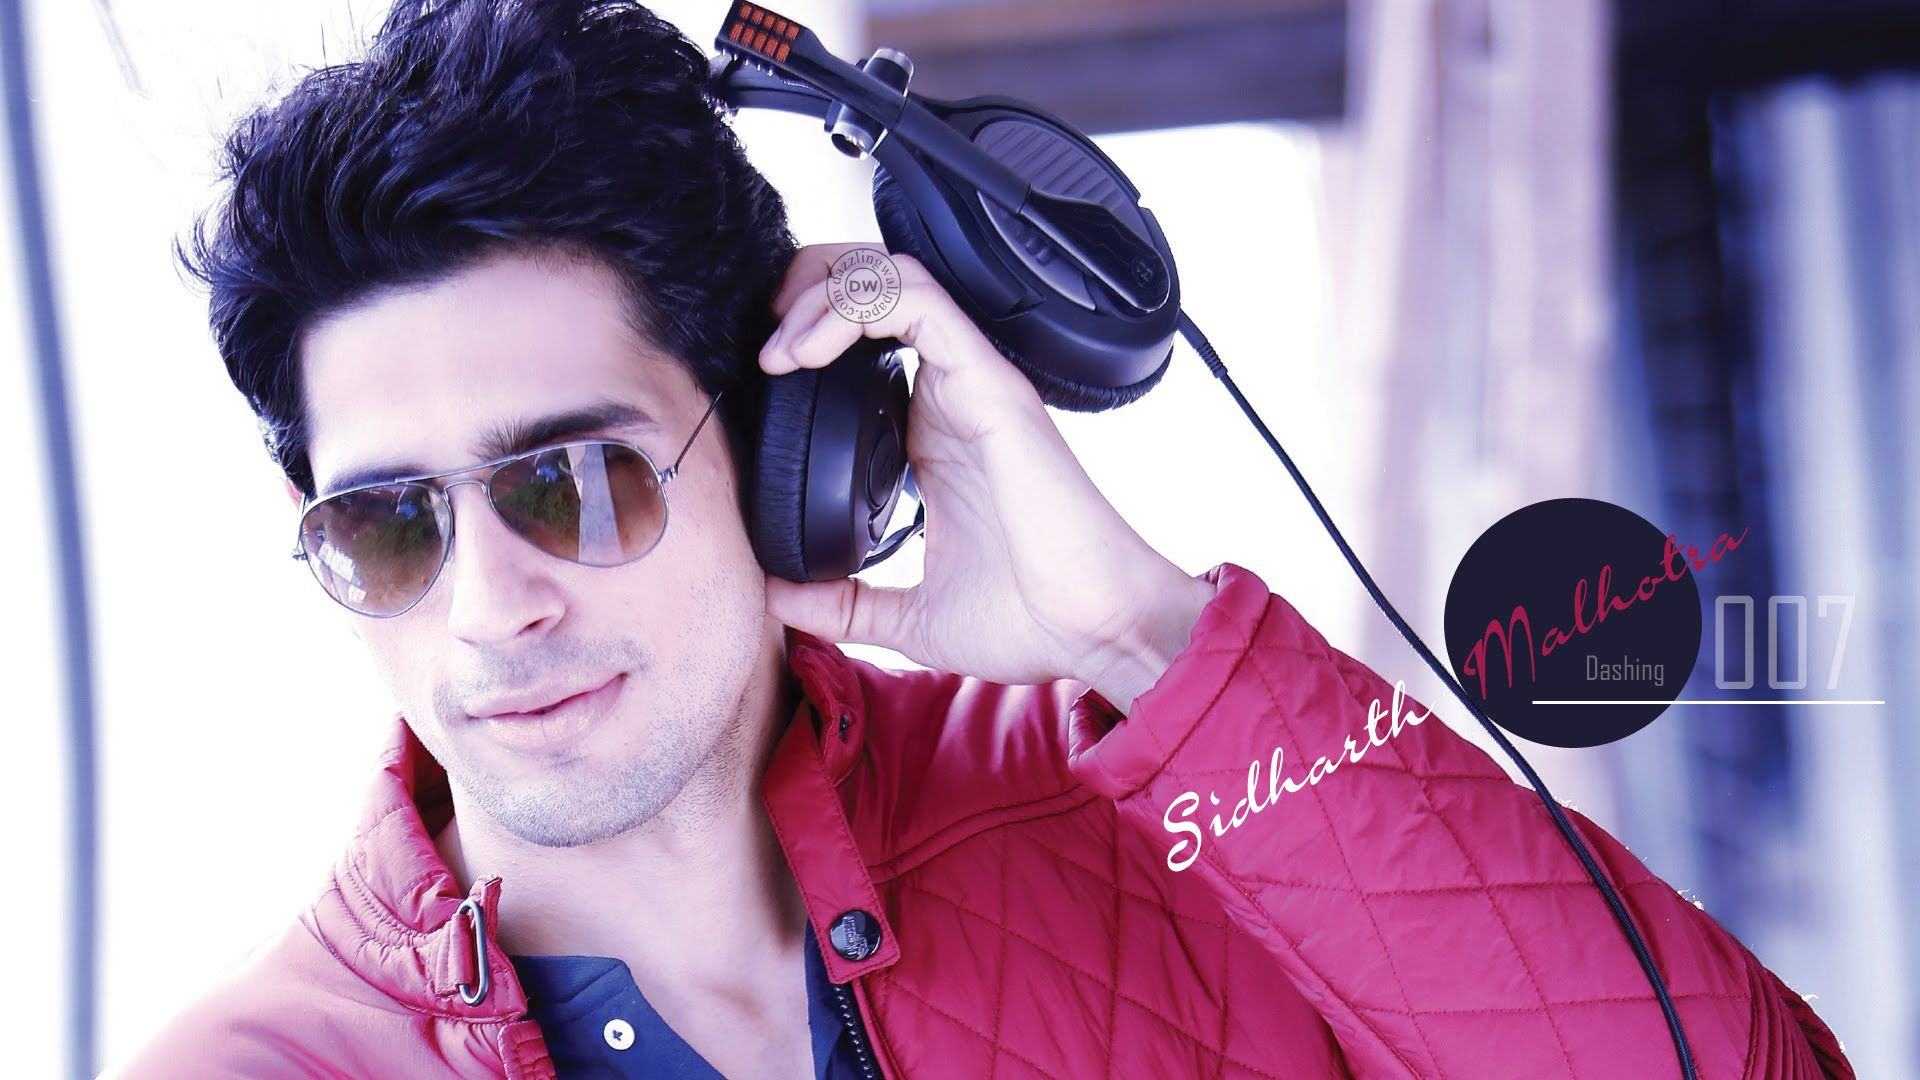 Wallpaper download bollywood actors - Sidharth Malhotra New Hd Wallpaper Siddharth Malhotra Bollywood Actor Wallpapers Images